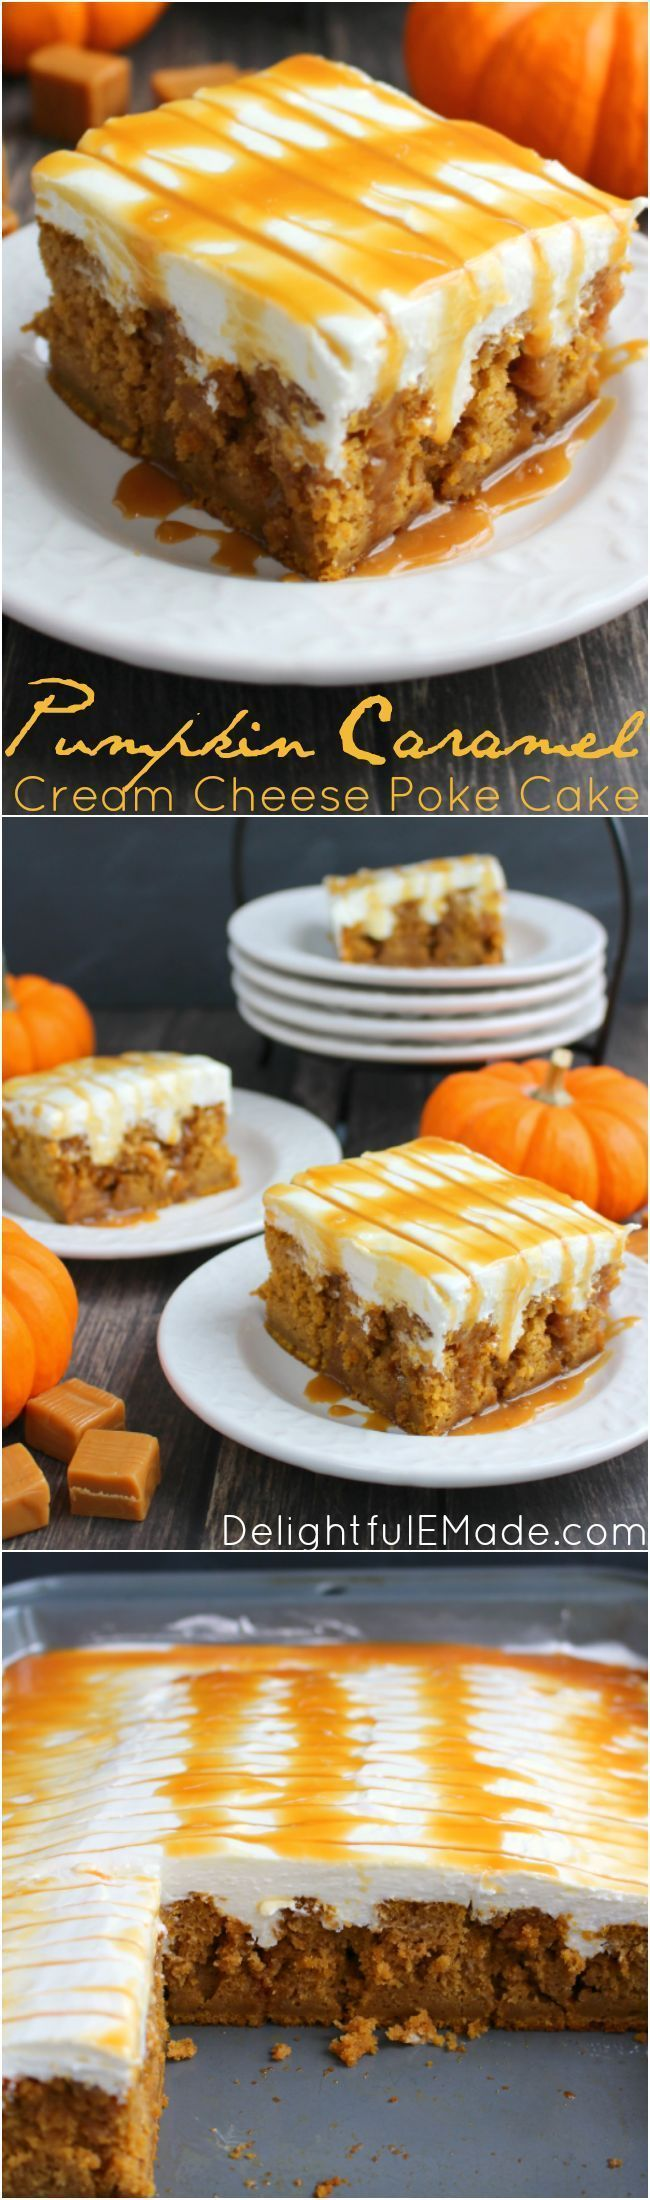 A pumpkin spice cake is drizzled with caramel sauce, frosted with a decadent cream cheese frosting and topped with even more caramel sauce!